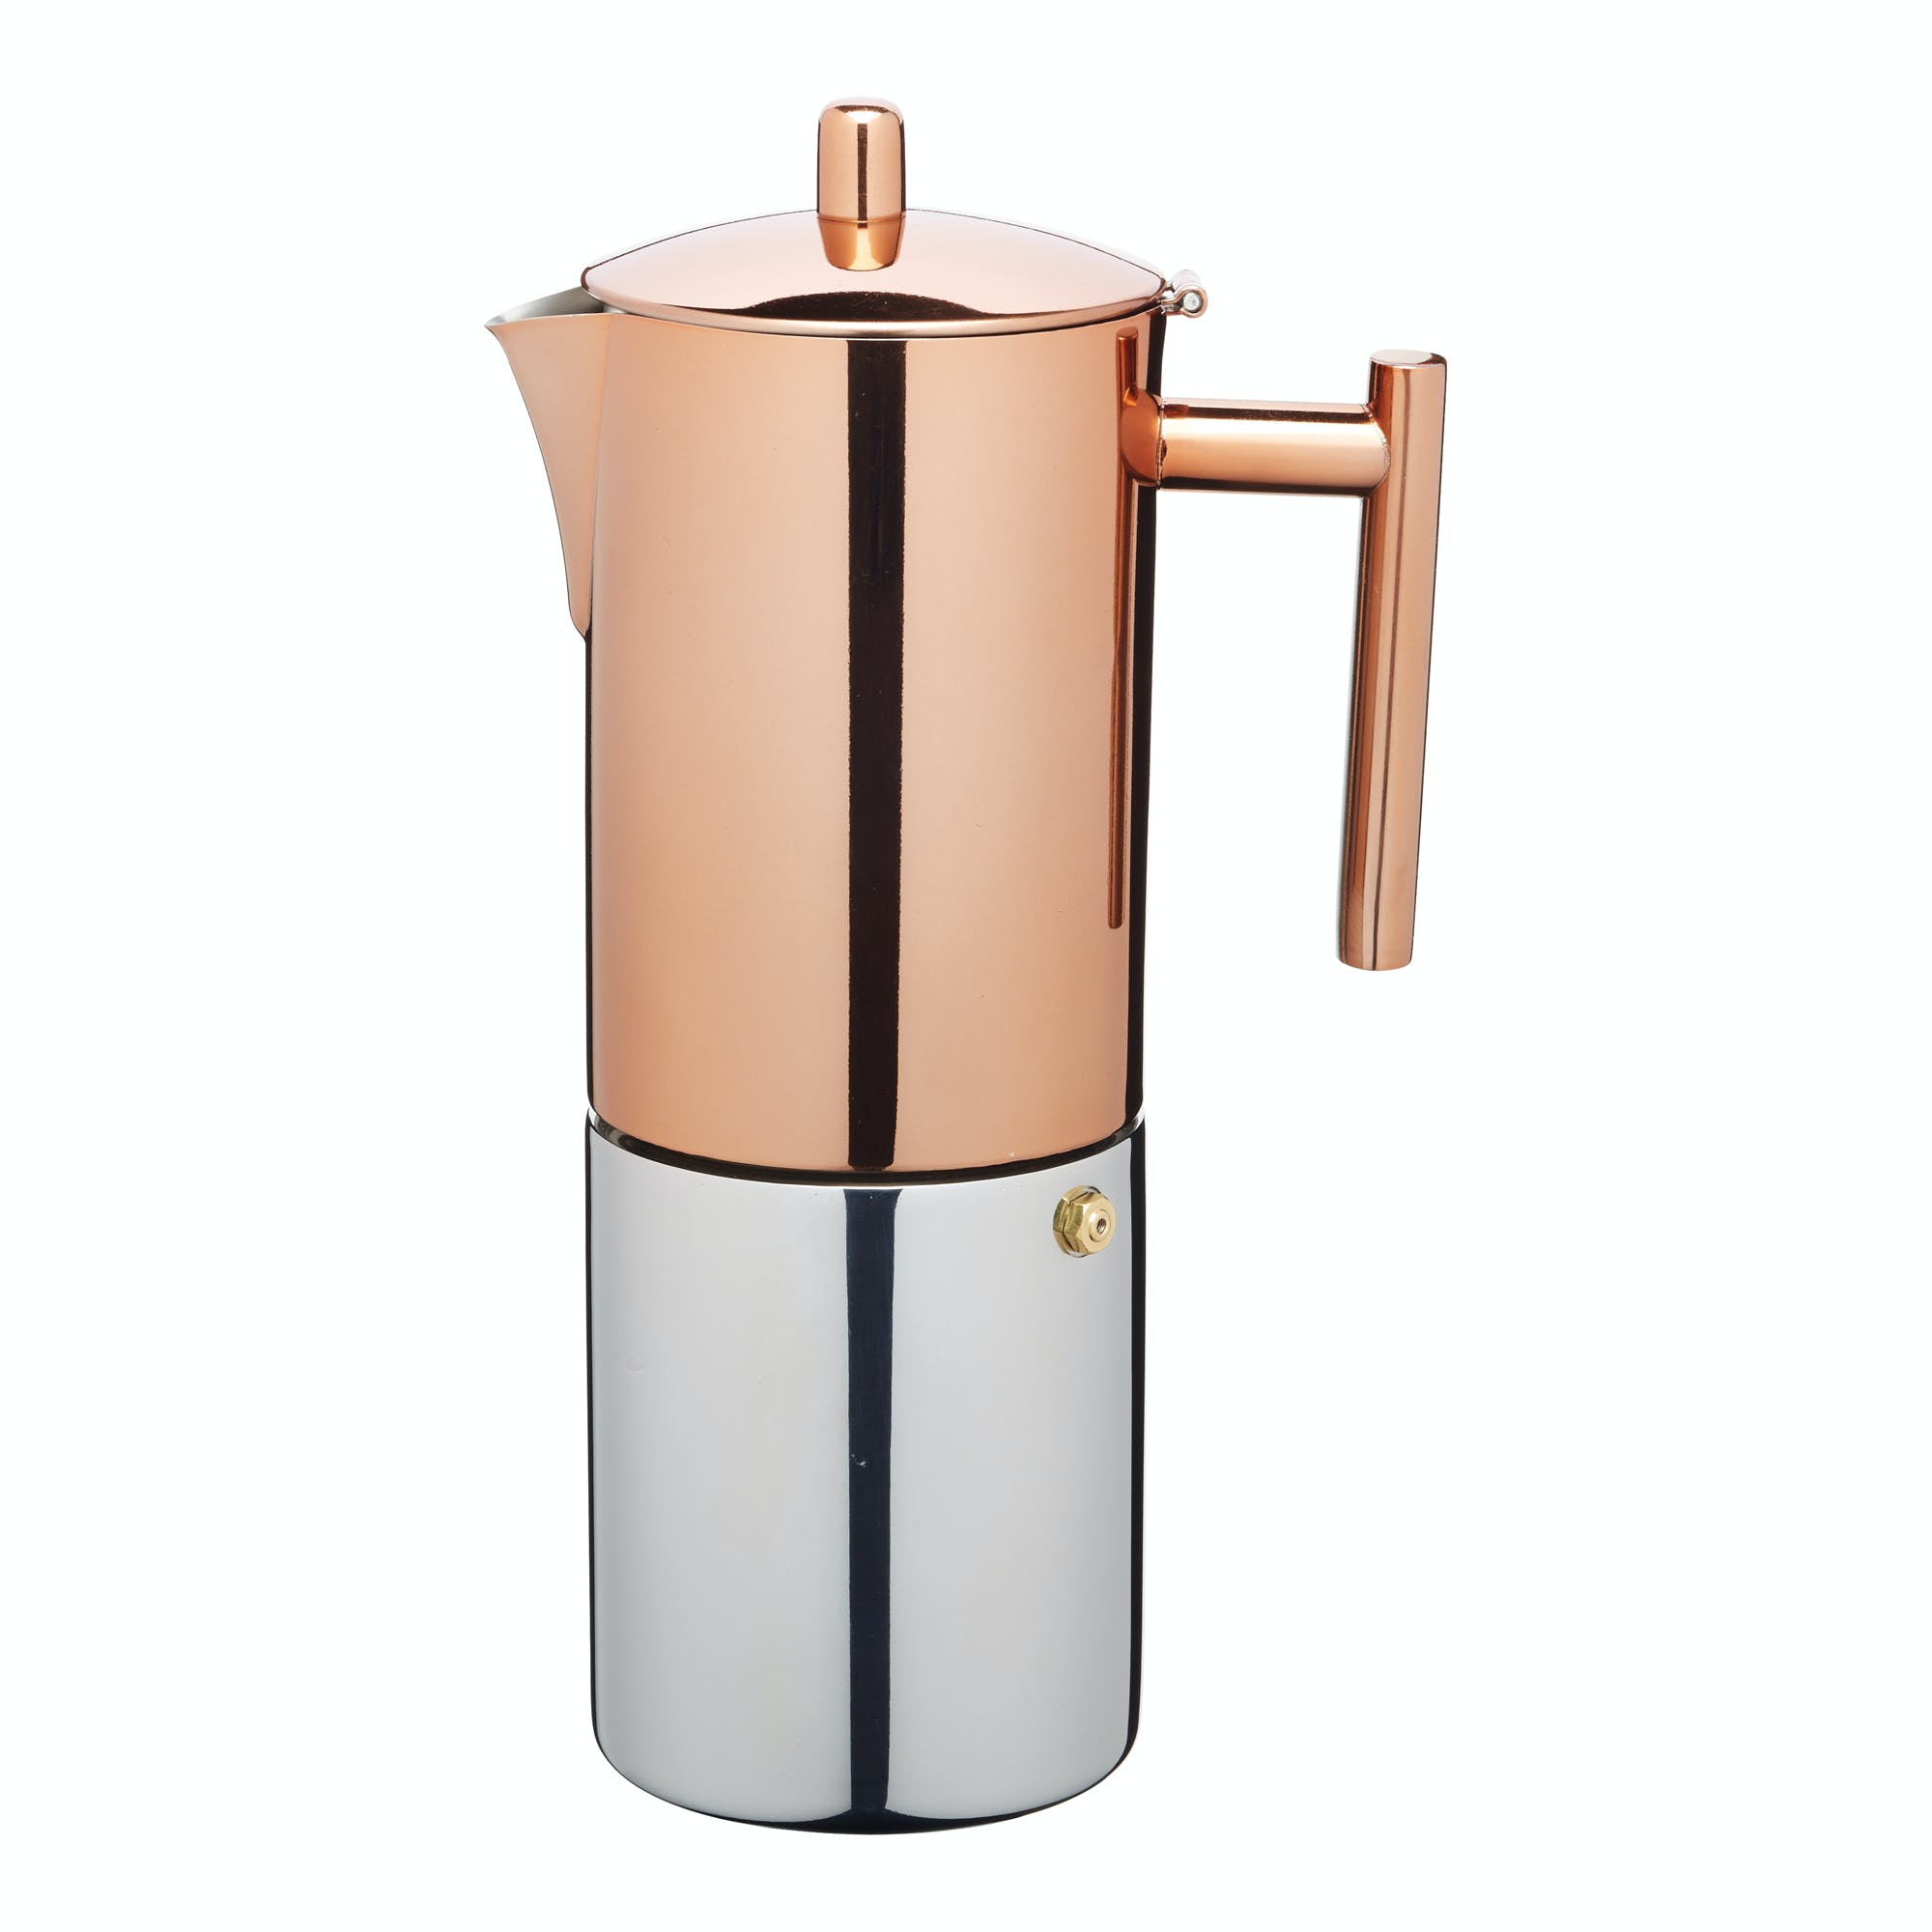 Le Xpress Stainless Steel Copper Effect 600ml Espresso